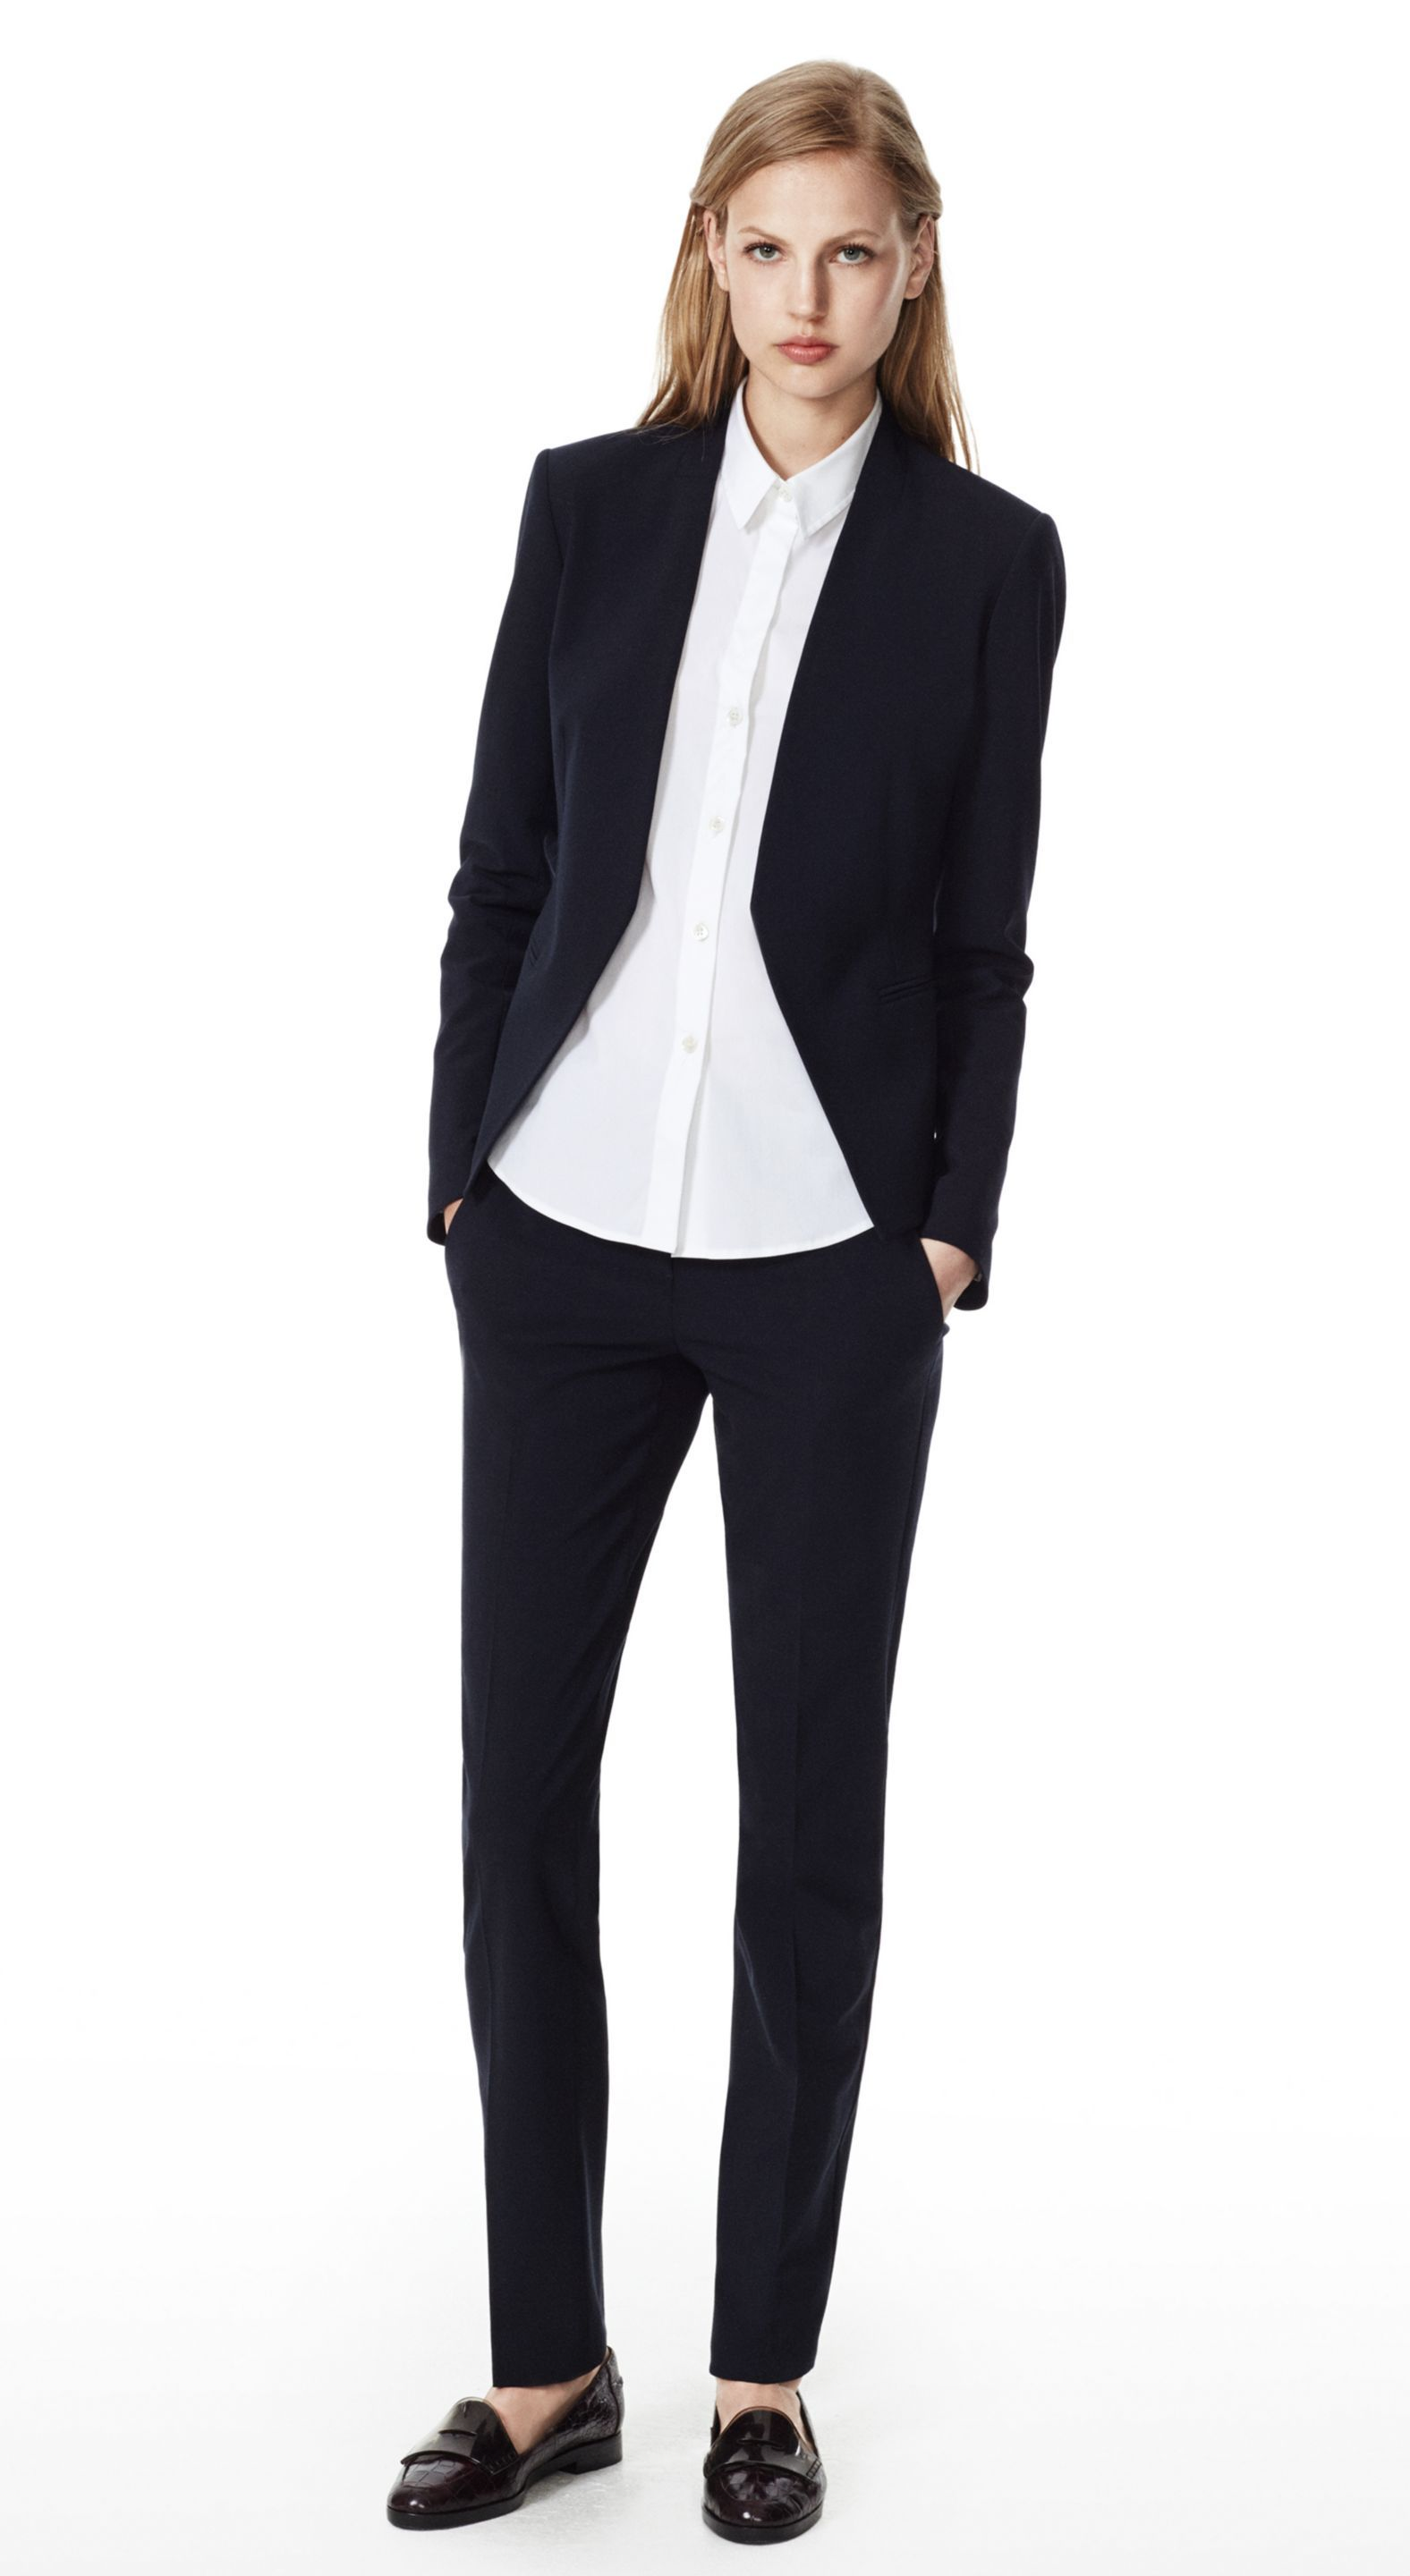 2f01fb8488d6 THEORY Uniform Lanai Jacket   Louise Pant in Urban Stretch Wool ...